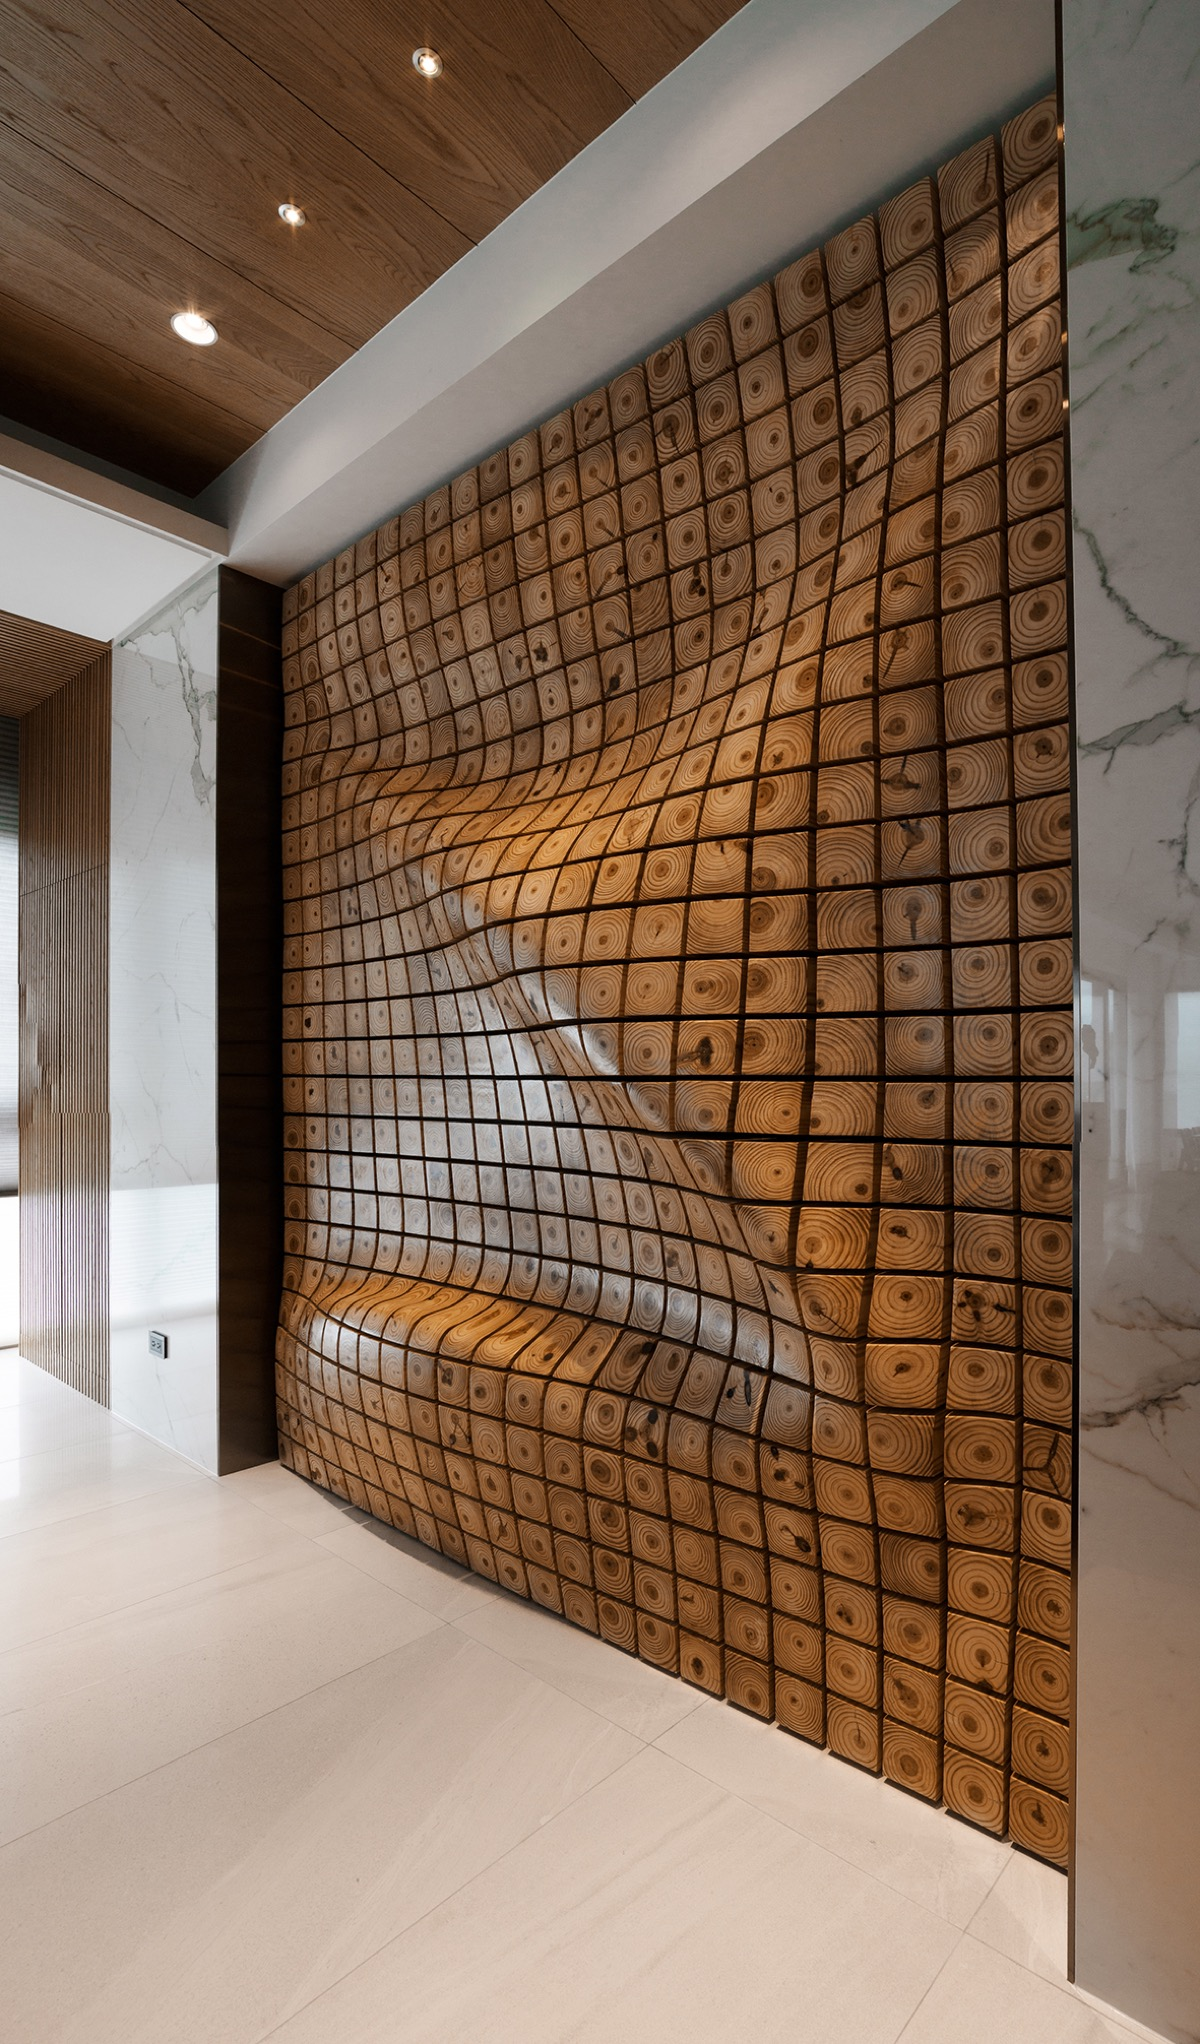 Amazing Wood Wall - 4 homes with design focused on beautiful wood elements